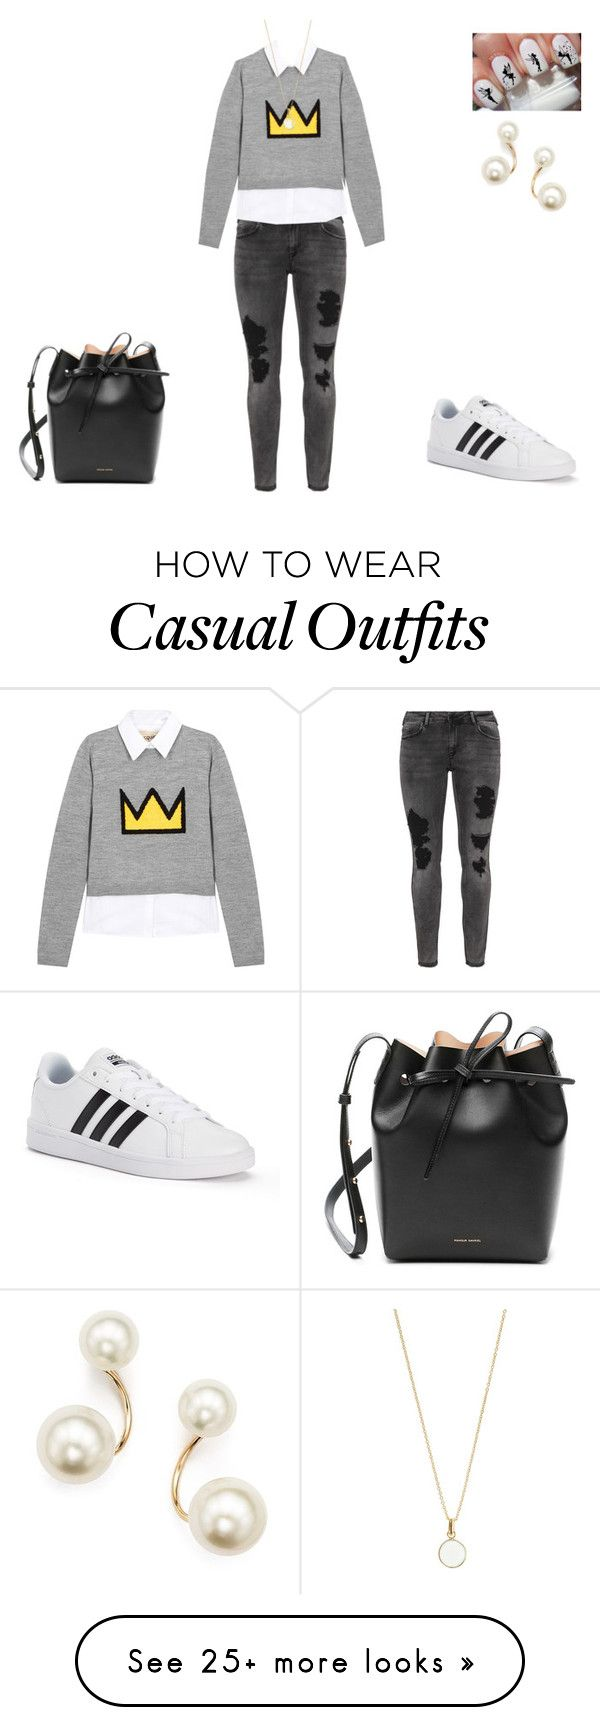 """""""Casual :))"""" by teich212 on Polyvore featuring Zizzi, Alice + Olivia, Mansur Gavriel, adidas, Disney, Zoë Chicco and Accessorize"""